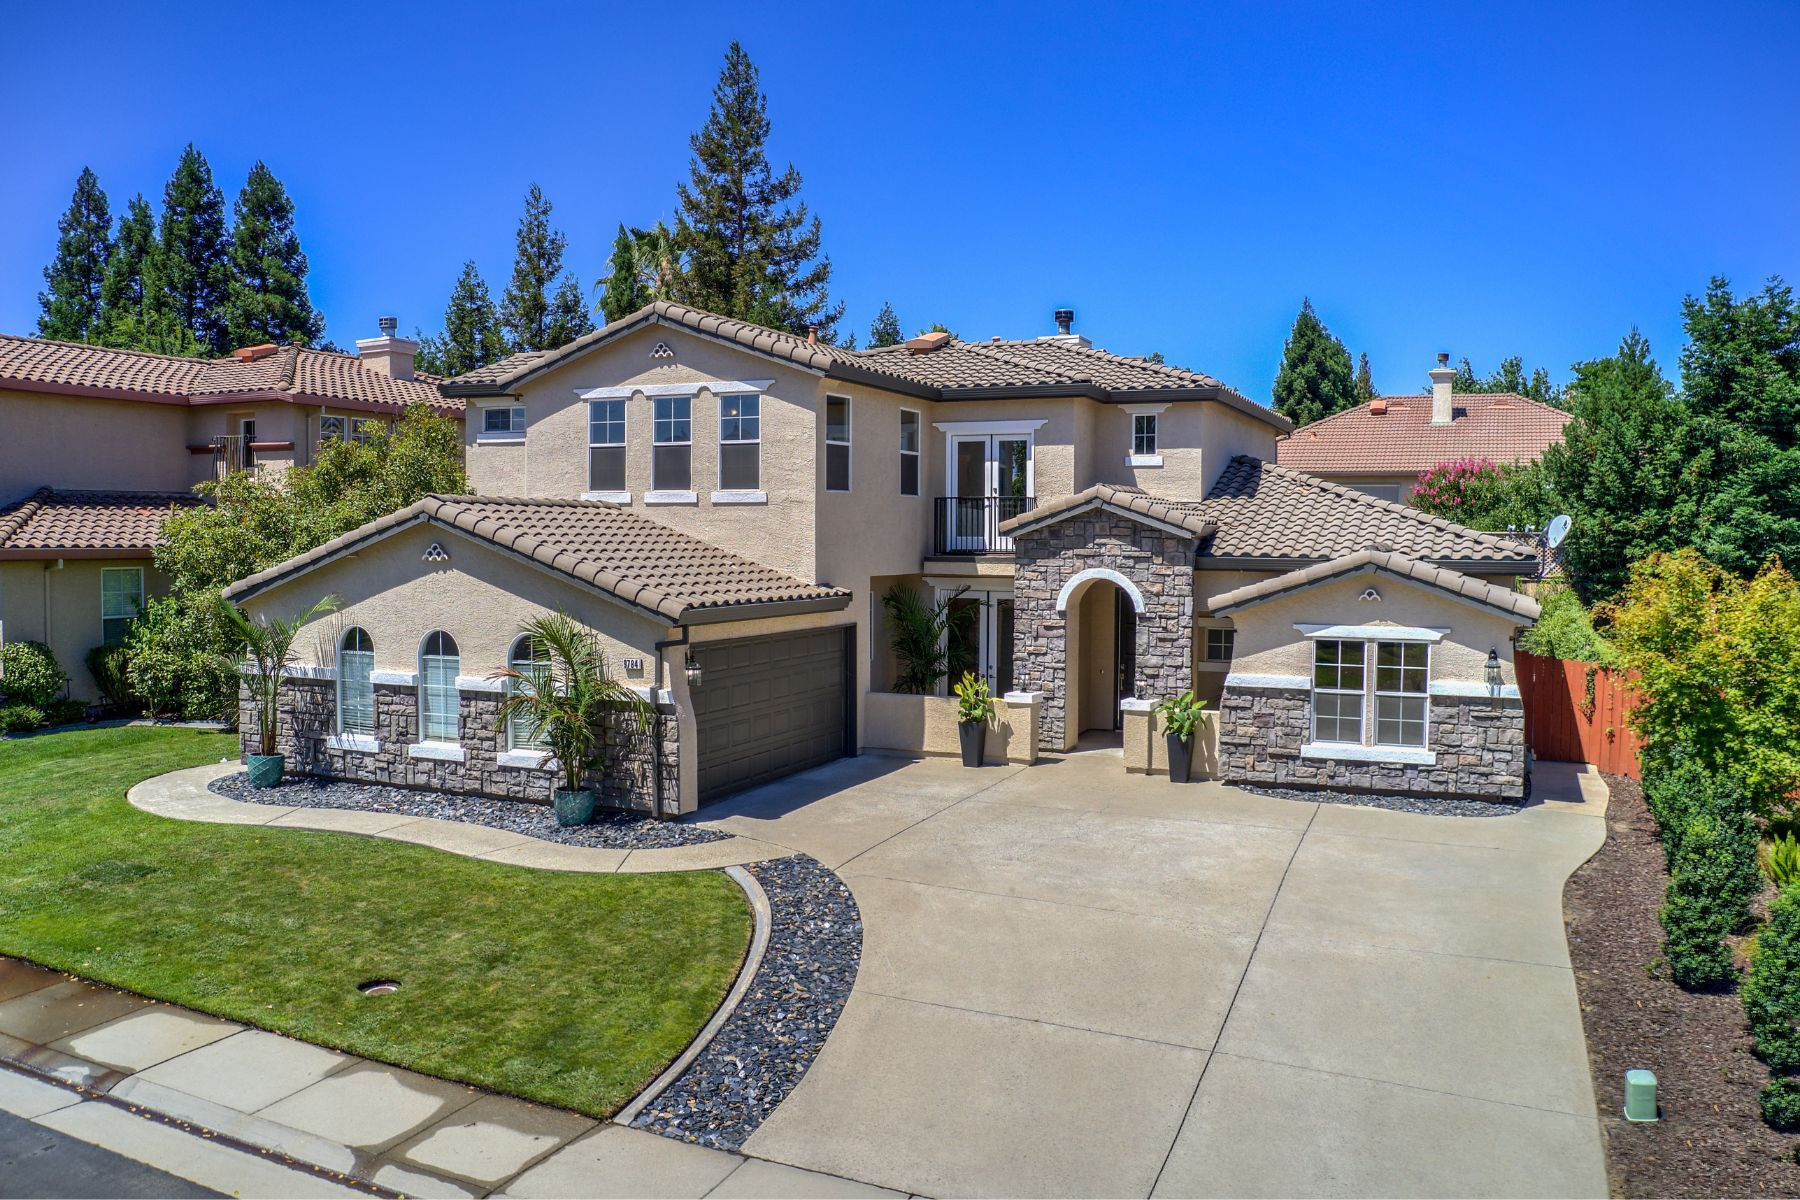 Other Residential Homes for Sale at 9784 Swan Lake, Granite Bay, CA, 95746 9784 Swan Lake Granite Bay, California 95746 United States